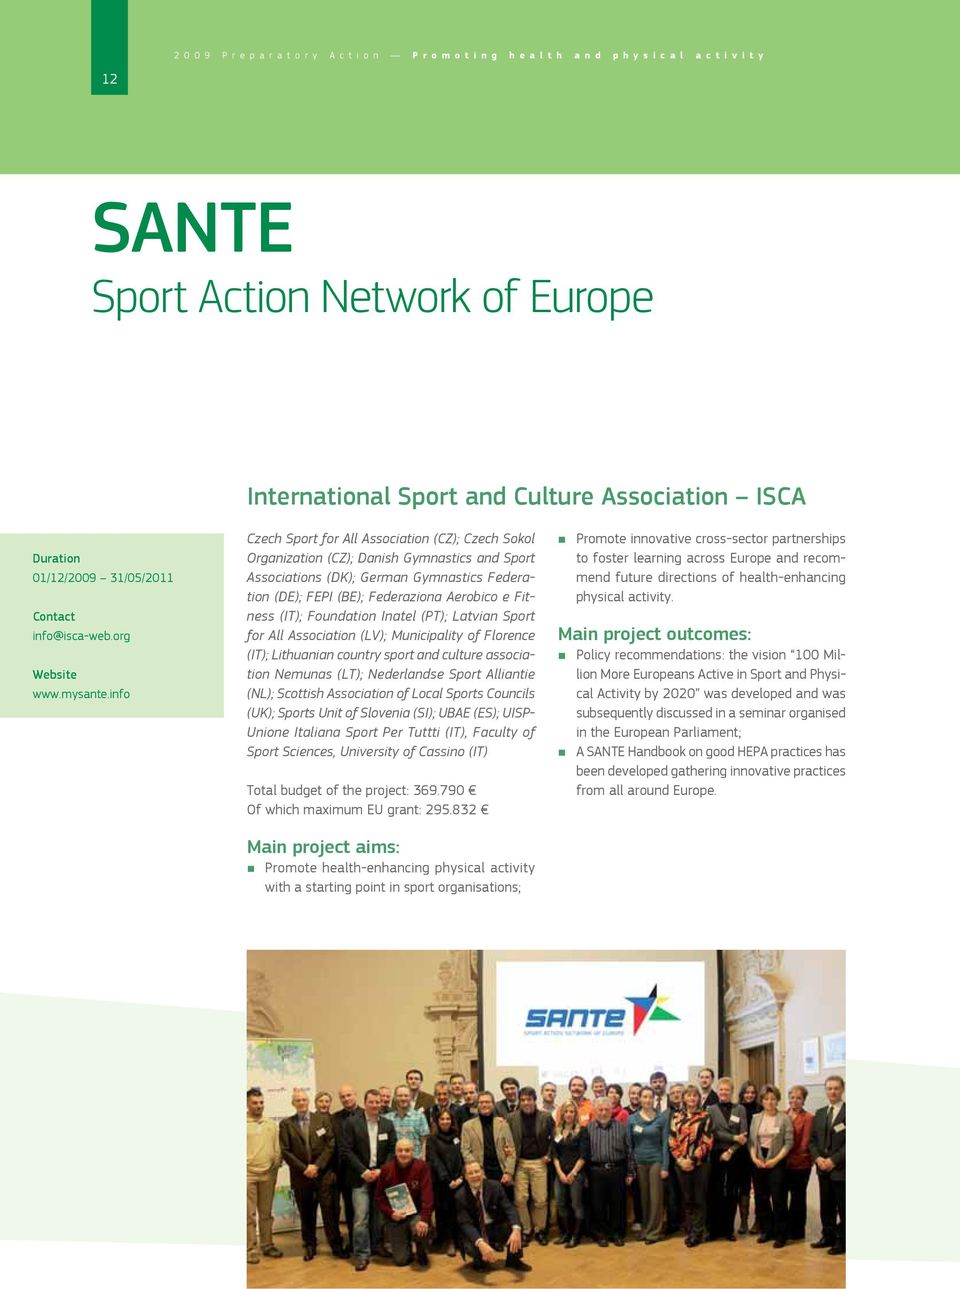 info Czech Sport for All Association (CZ); Czech Sokol Organization (CZ); Danish Gymnastics and Sport Associations (DK); German Gymnastics Federation (DE); FEPI (BE); Federaziona Aerobico e Fitness